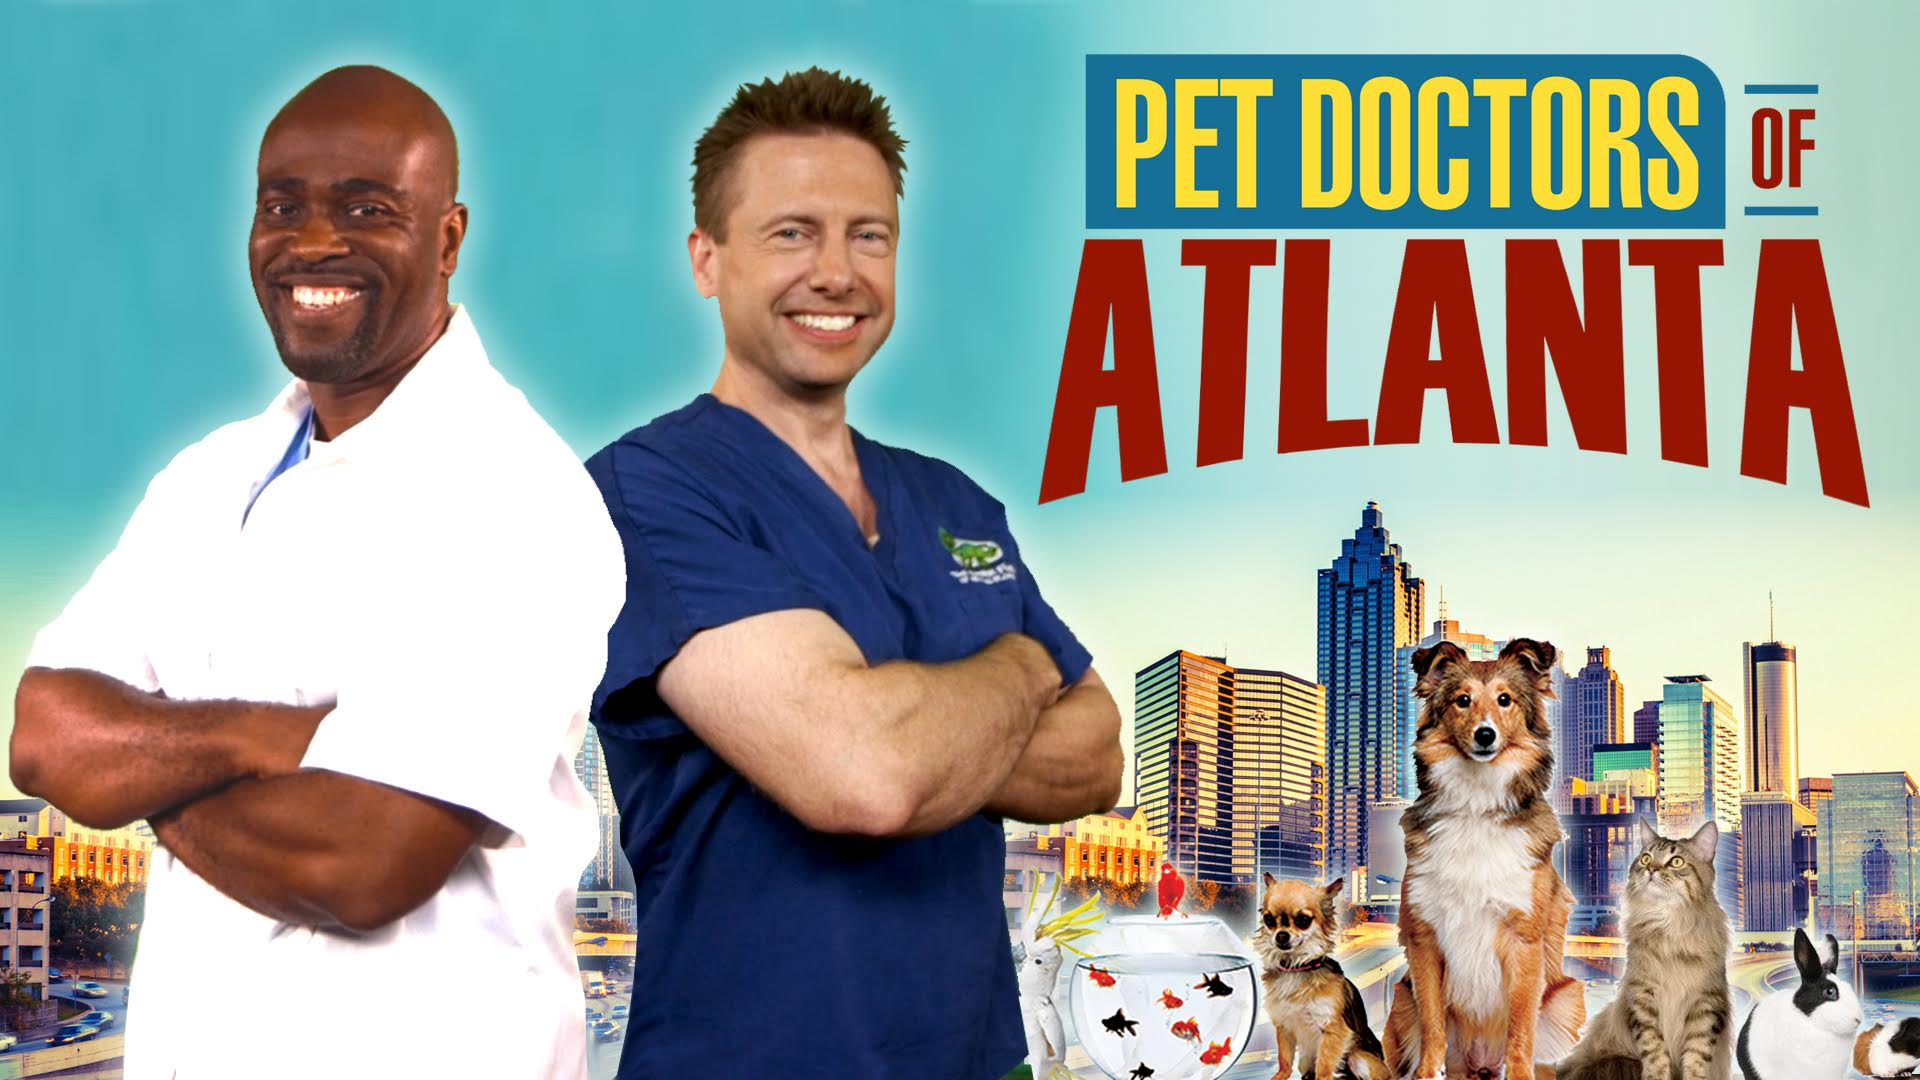 Pet Doctors of Atlanta